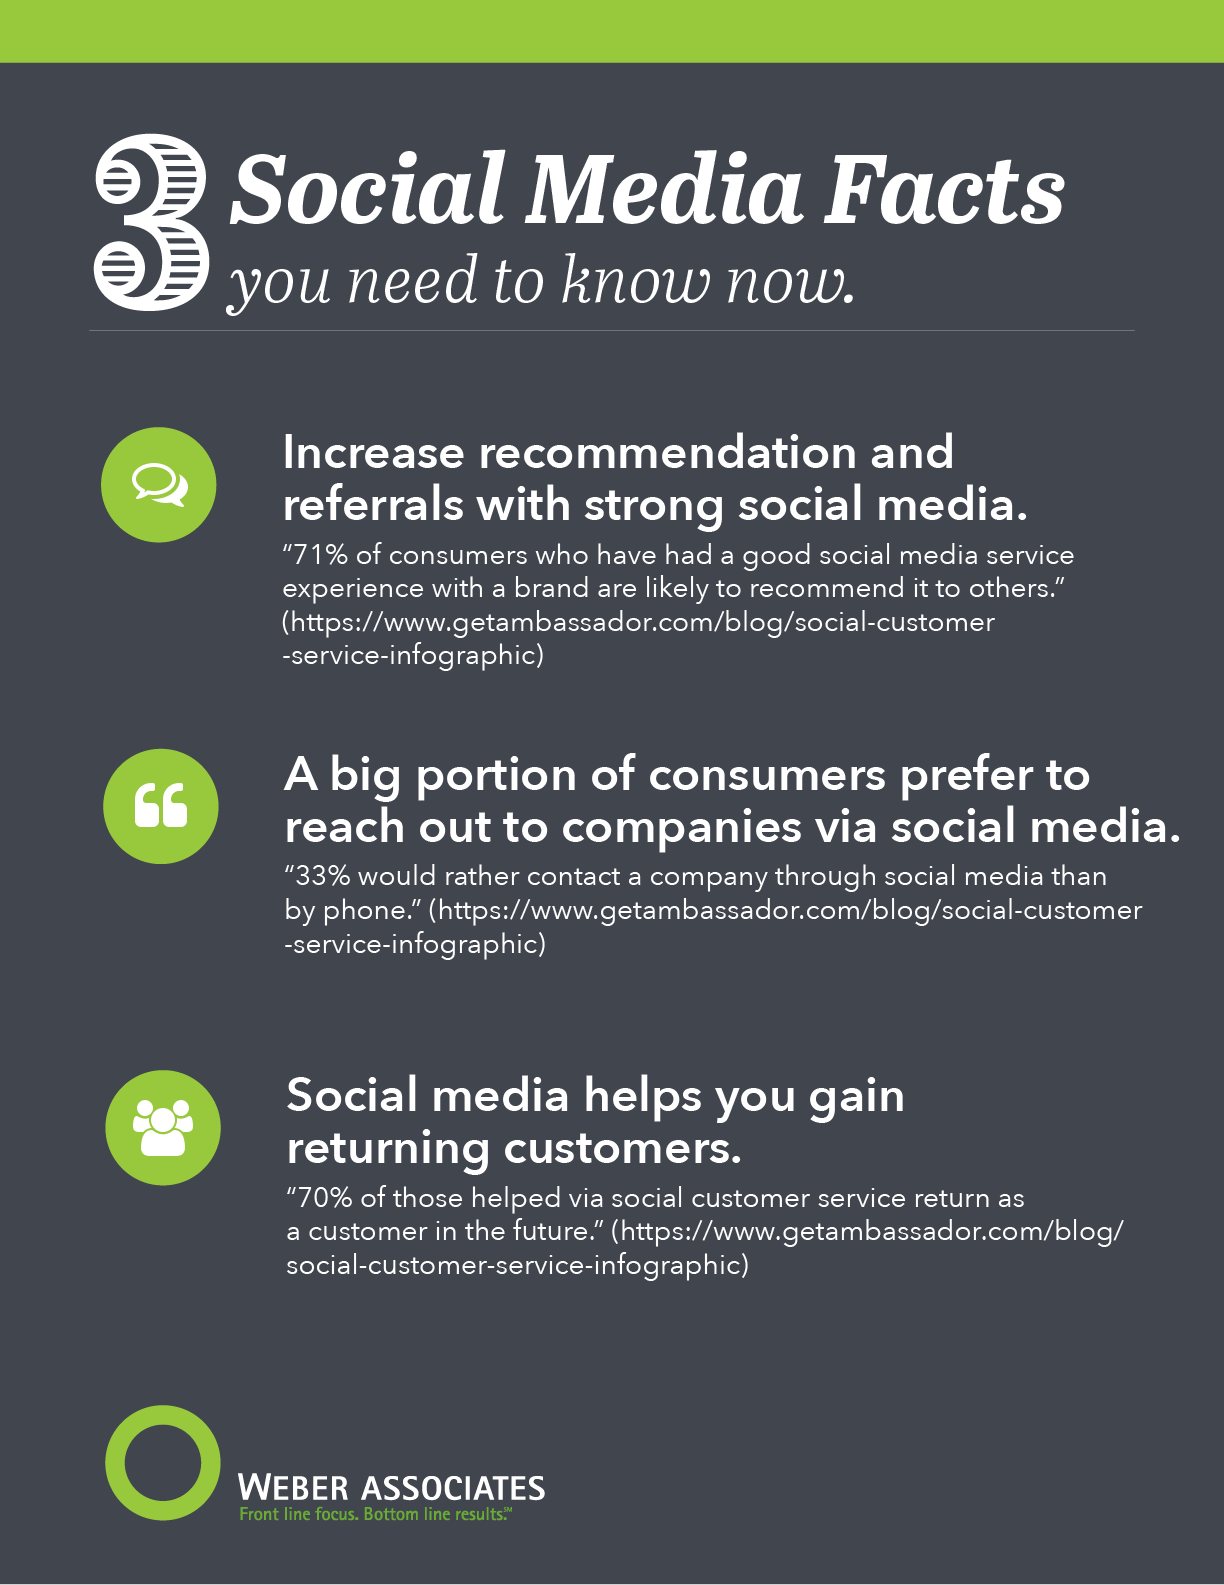 Social Media facts that are interesting.